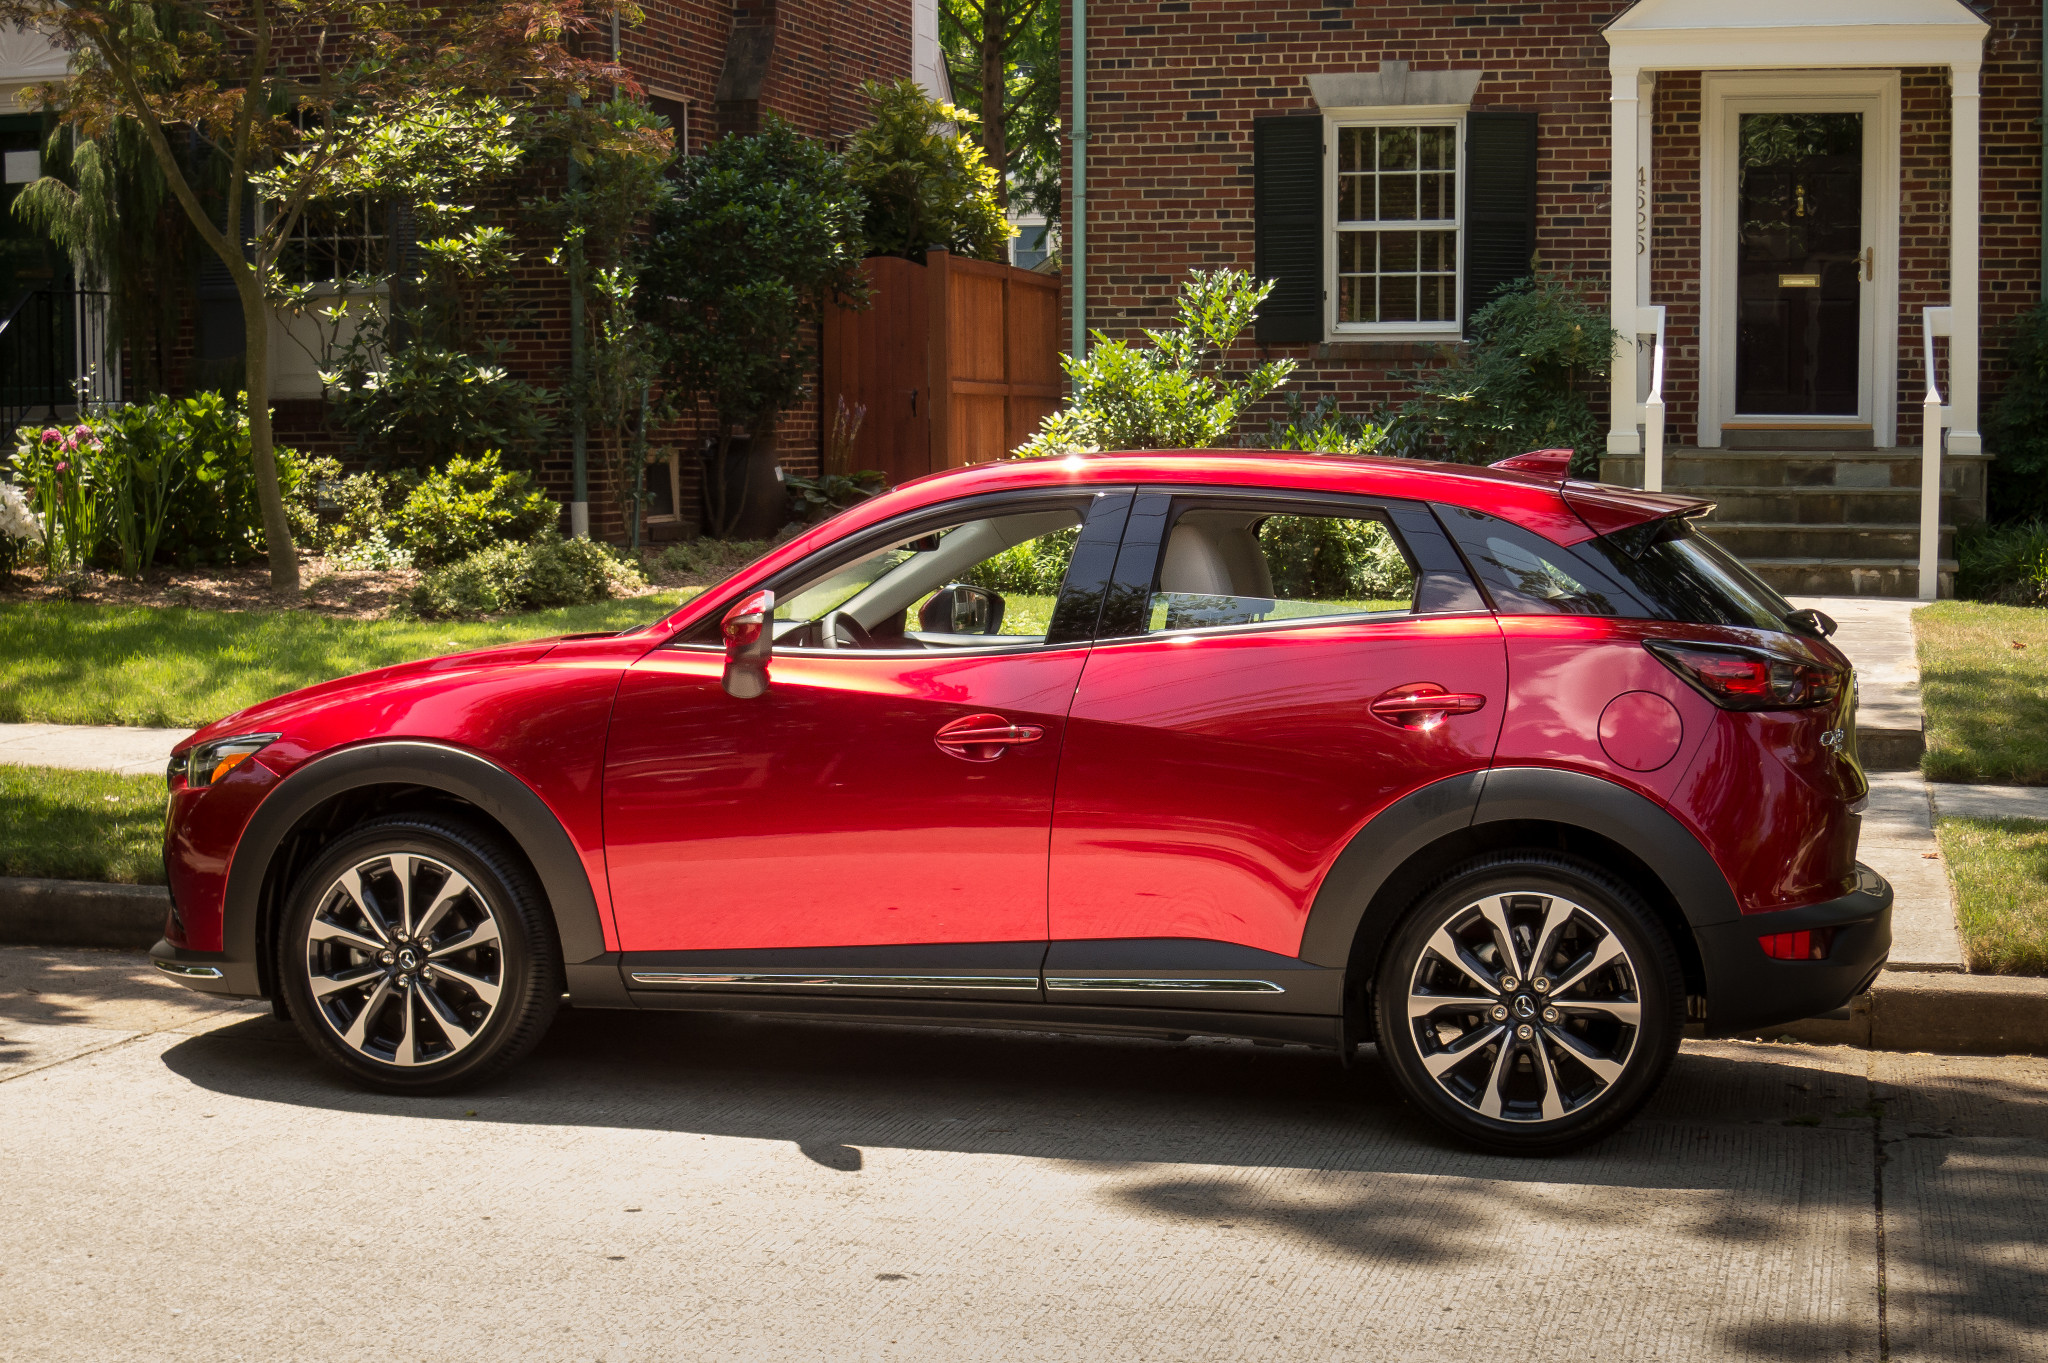 Mazda CX-3: Which Should You Buy, 2019 or 2020?